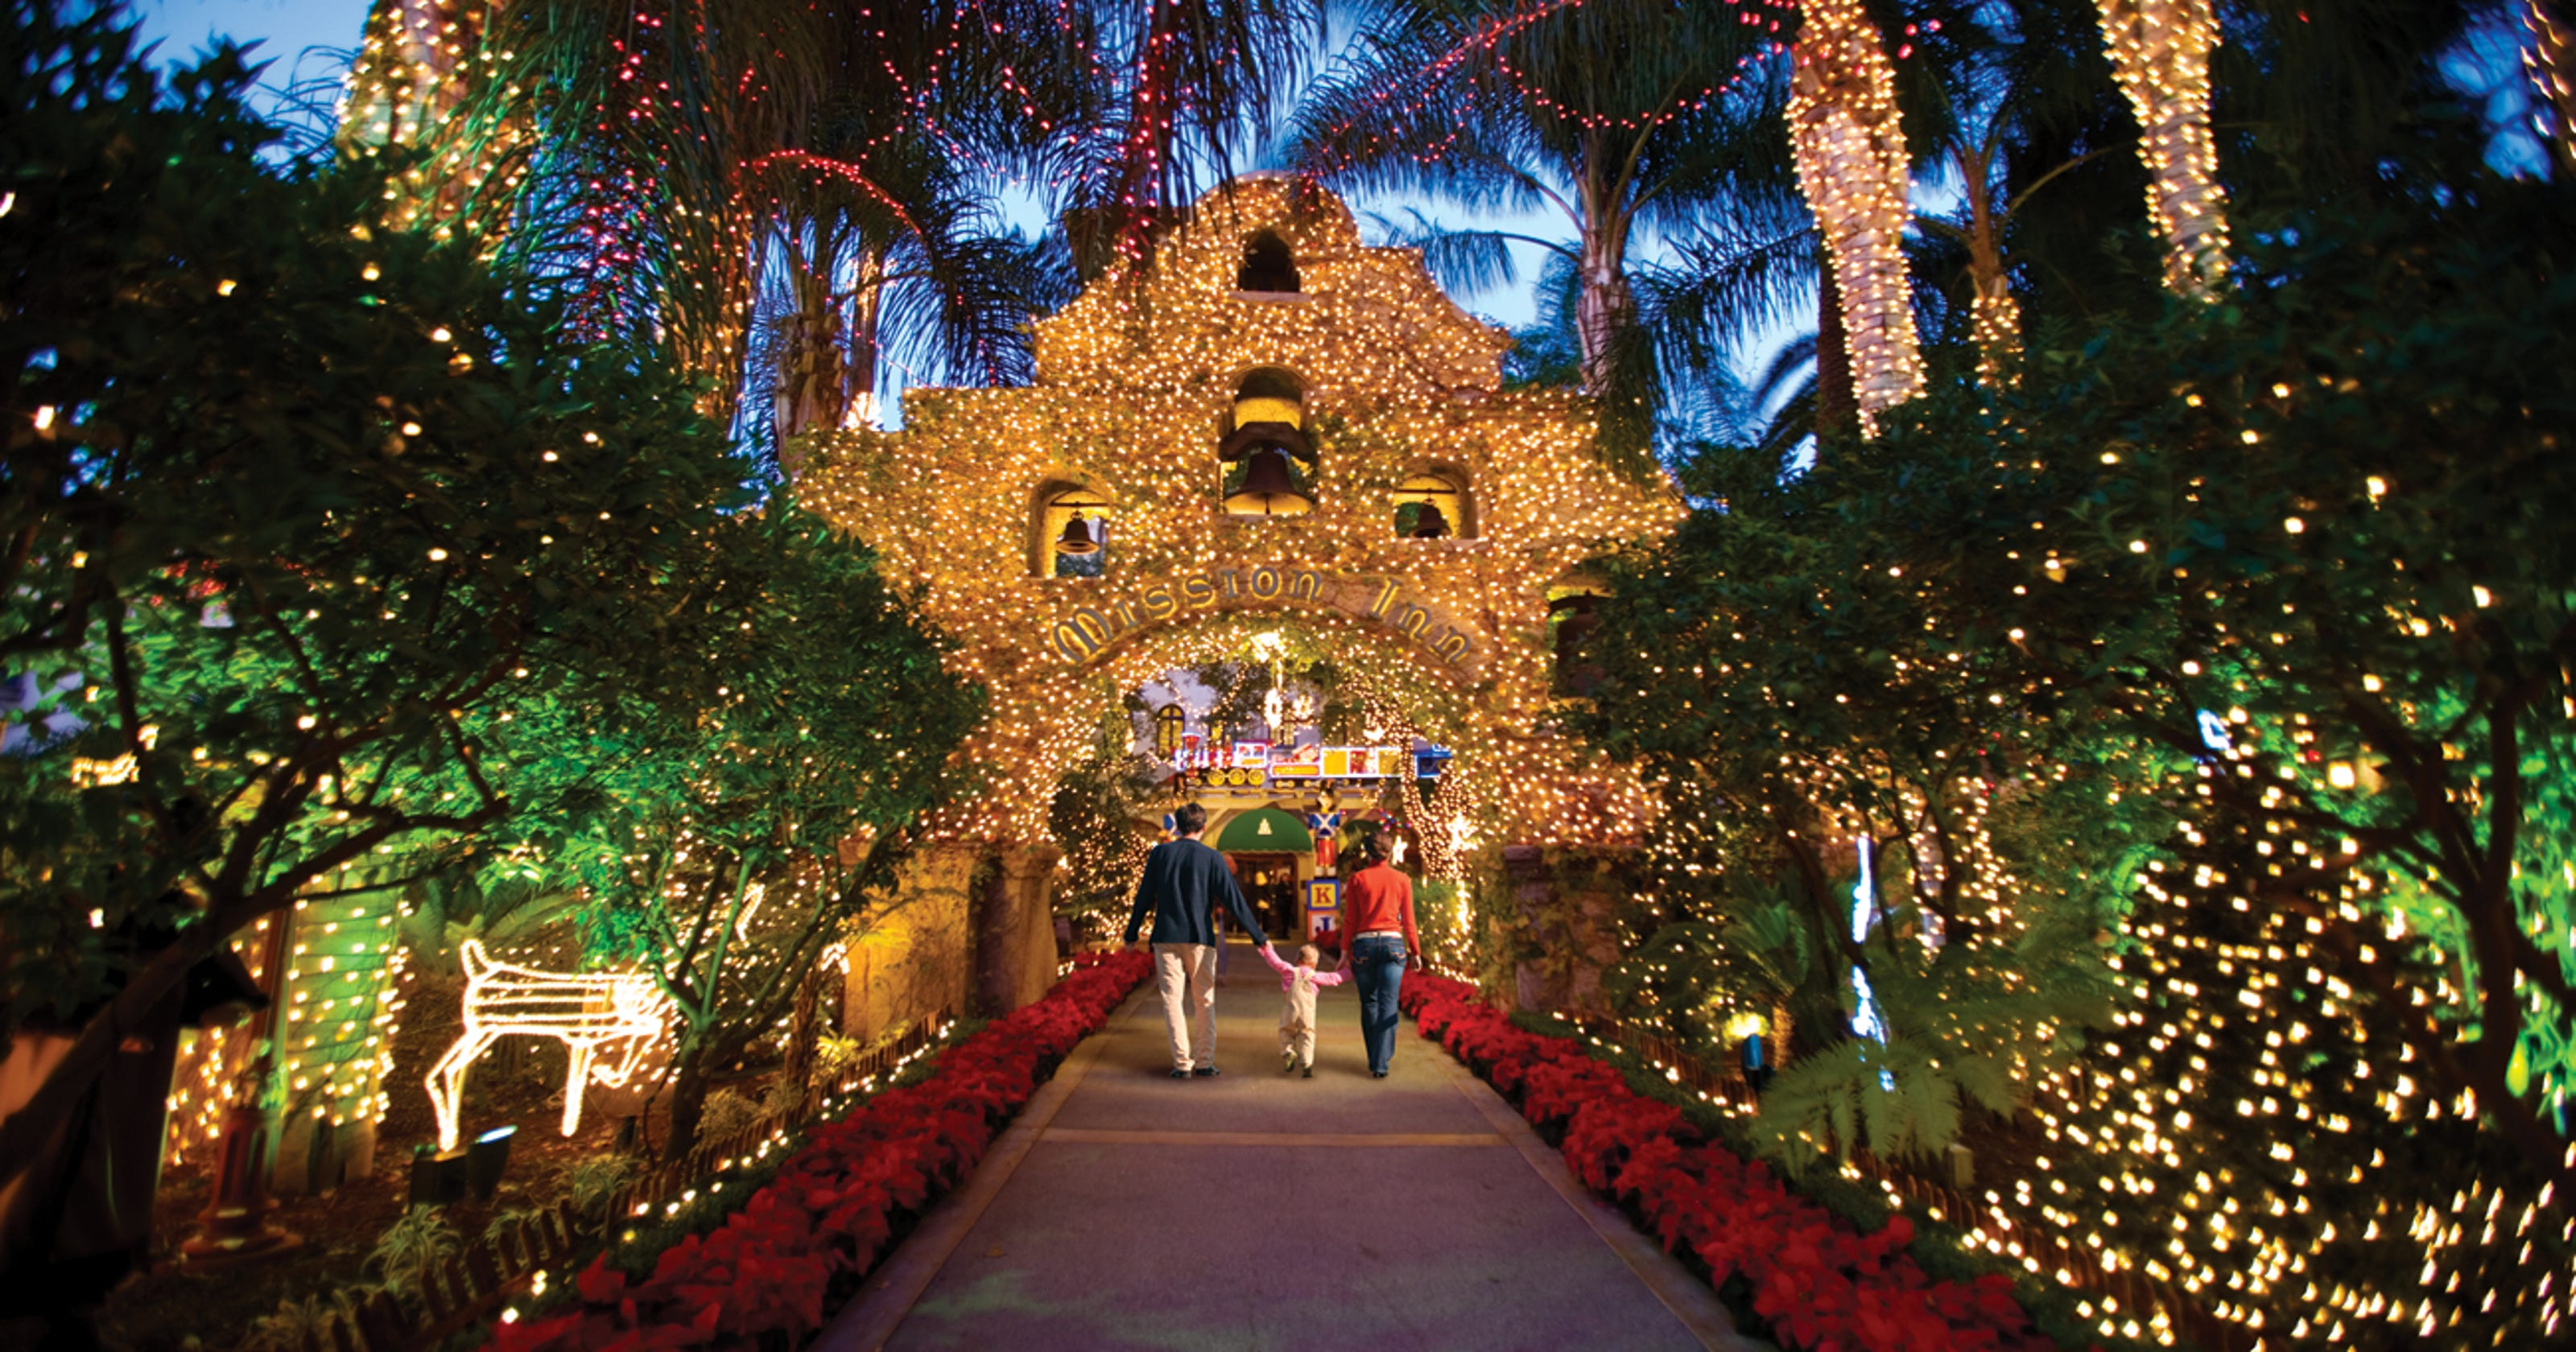 10Best Readers\' Choice: Best Public Holiday Lights Display